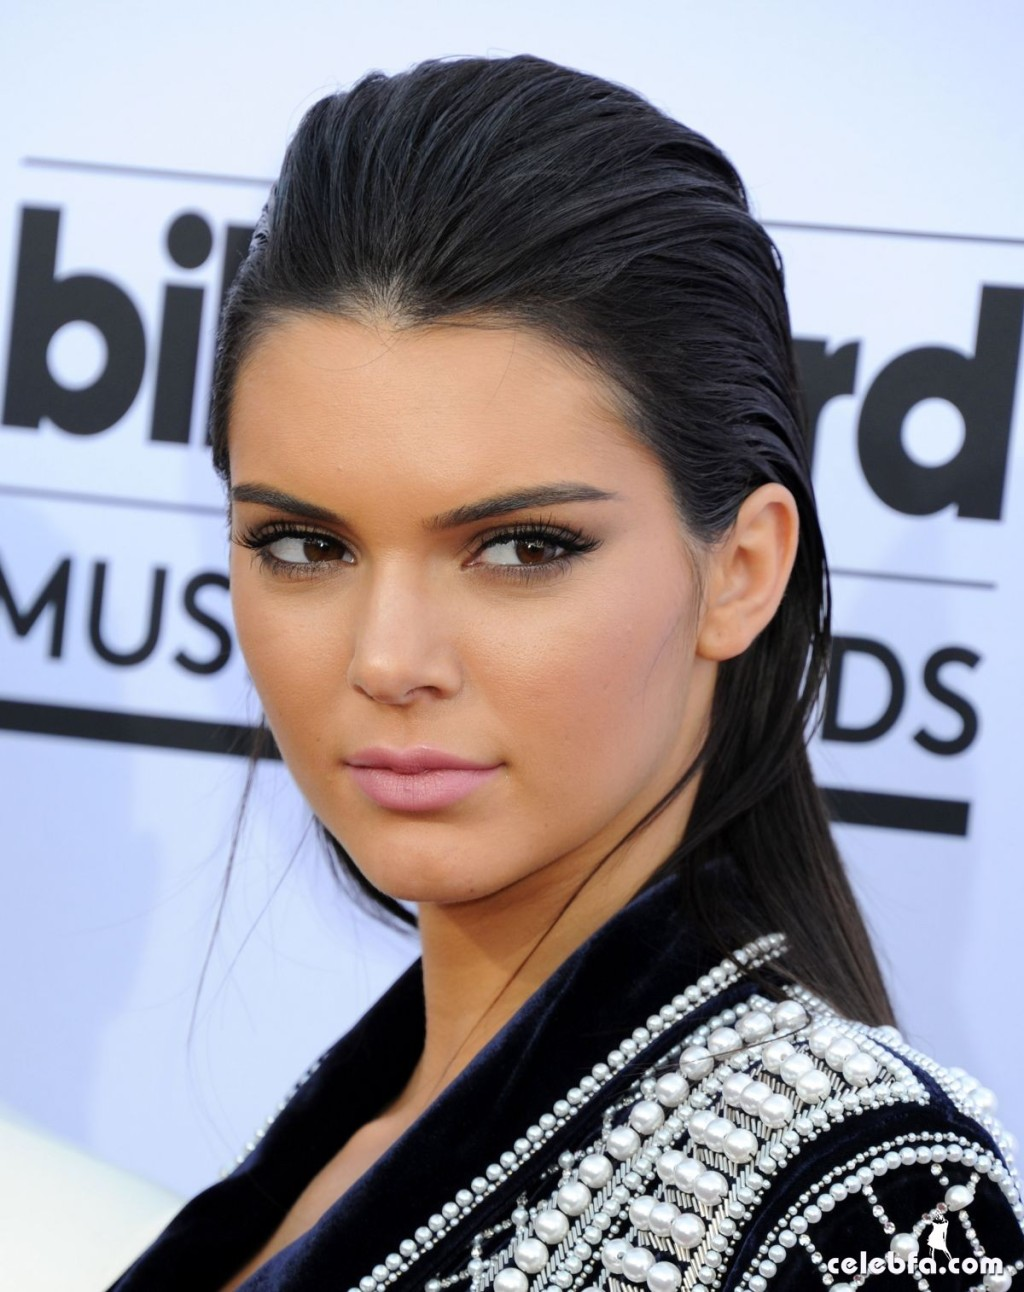 kendall-jenner-at-2015-billboard-music-awards (2)